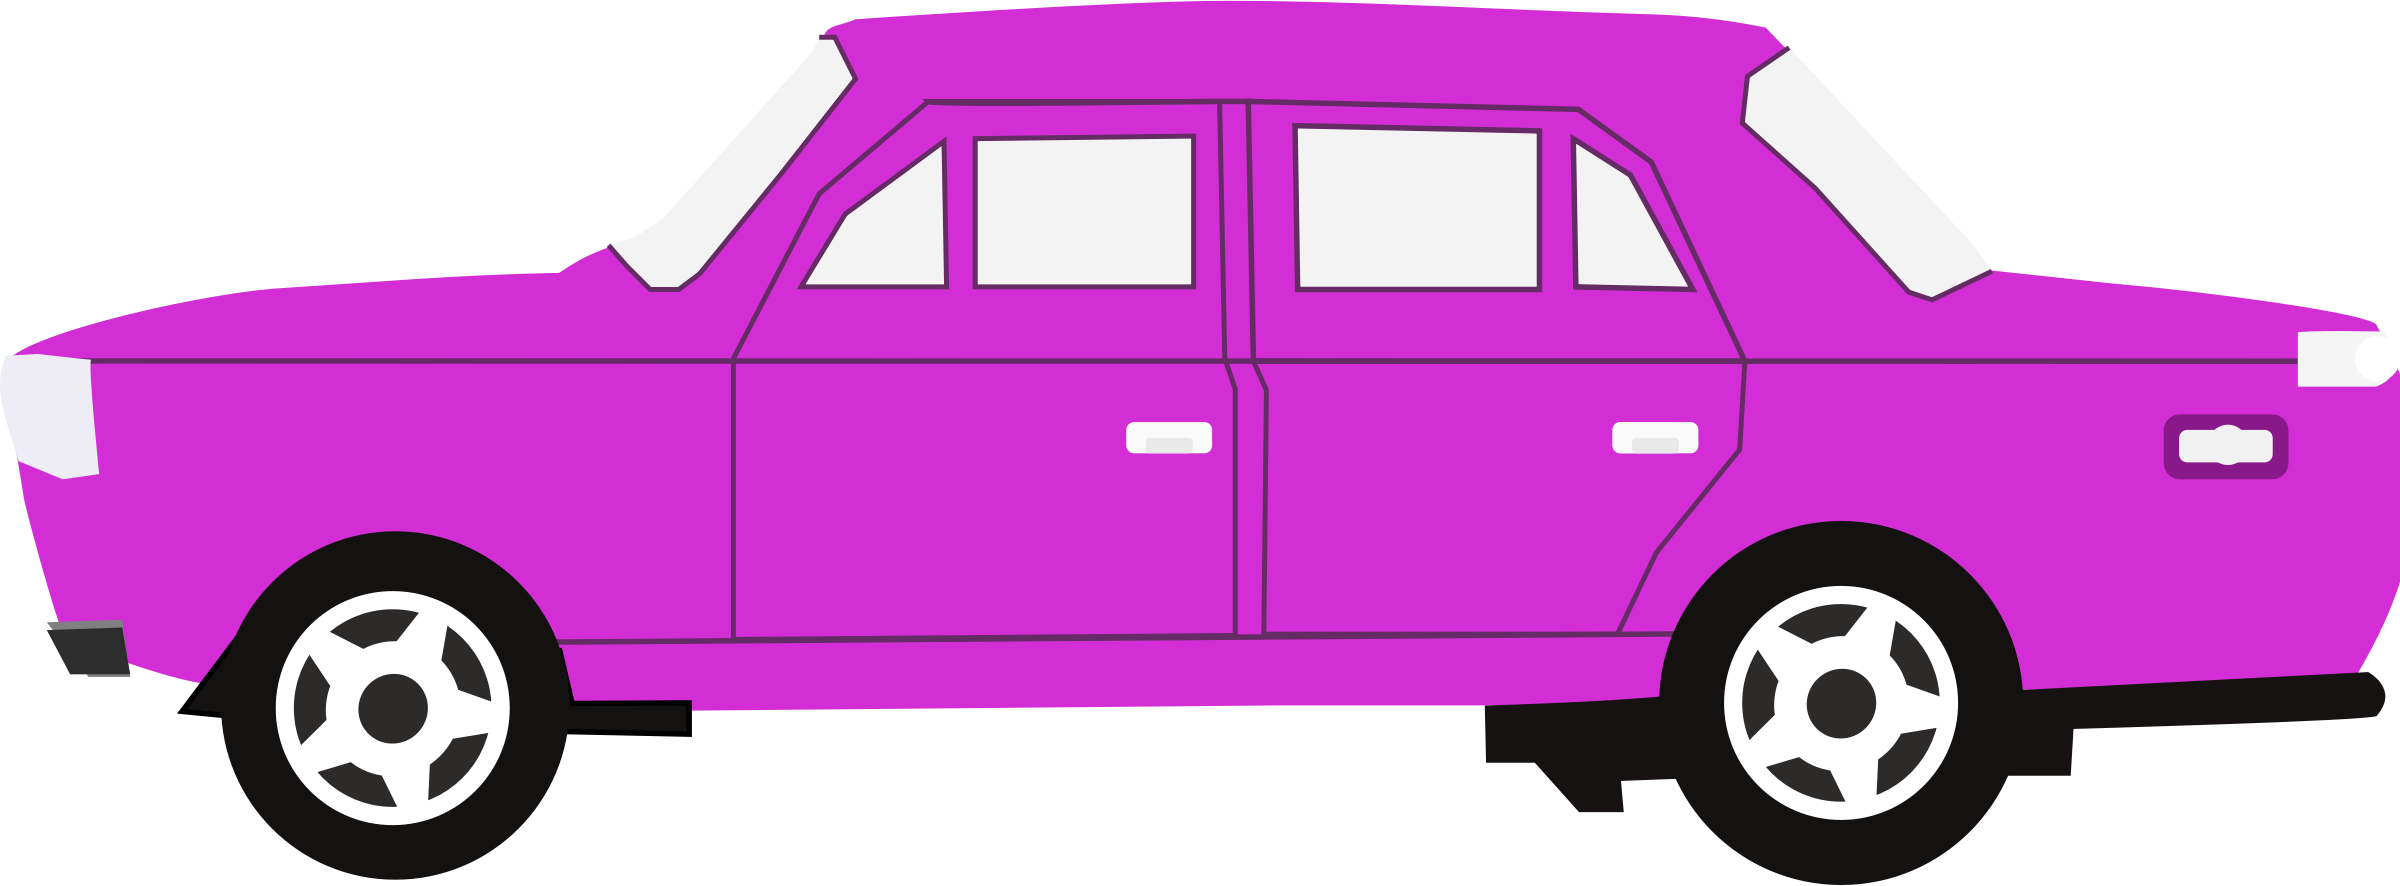 Car 16 (purple) by Firkin